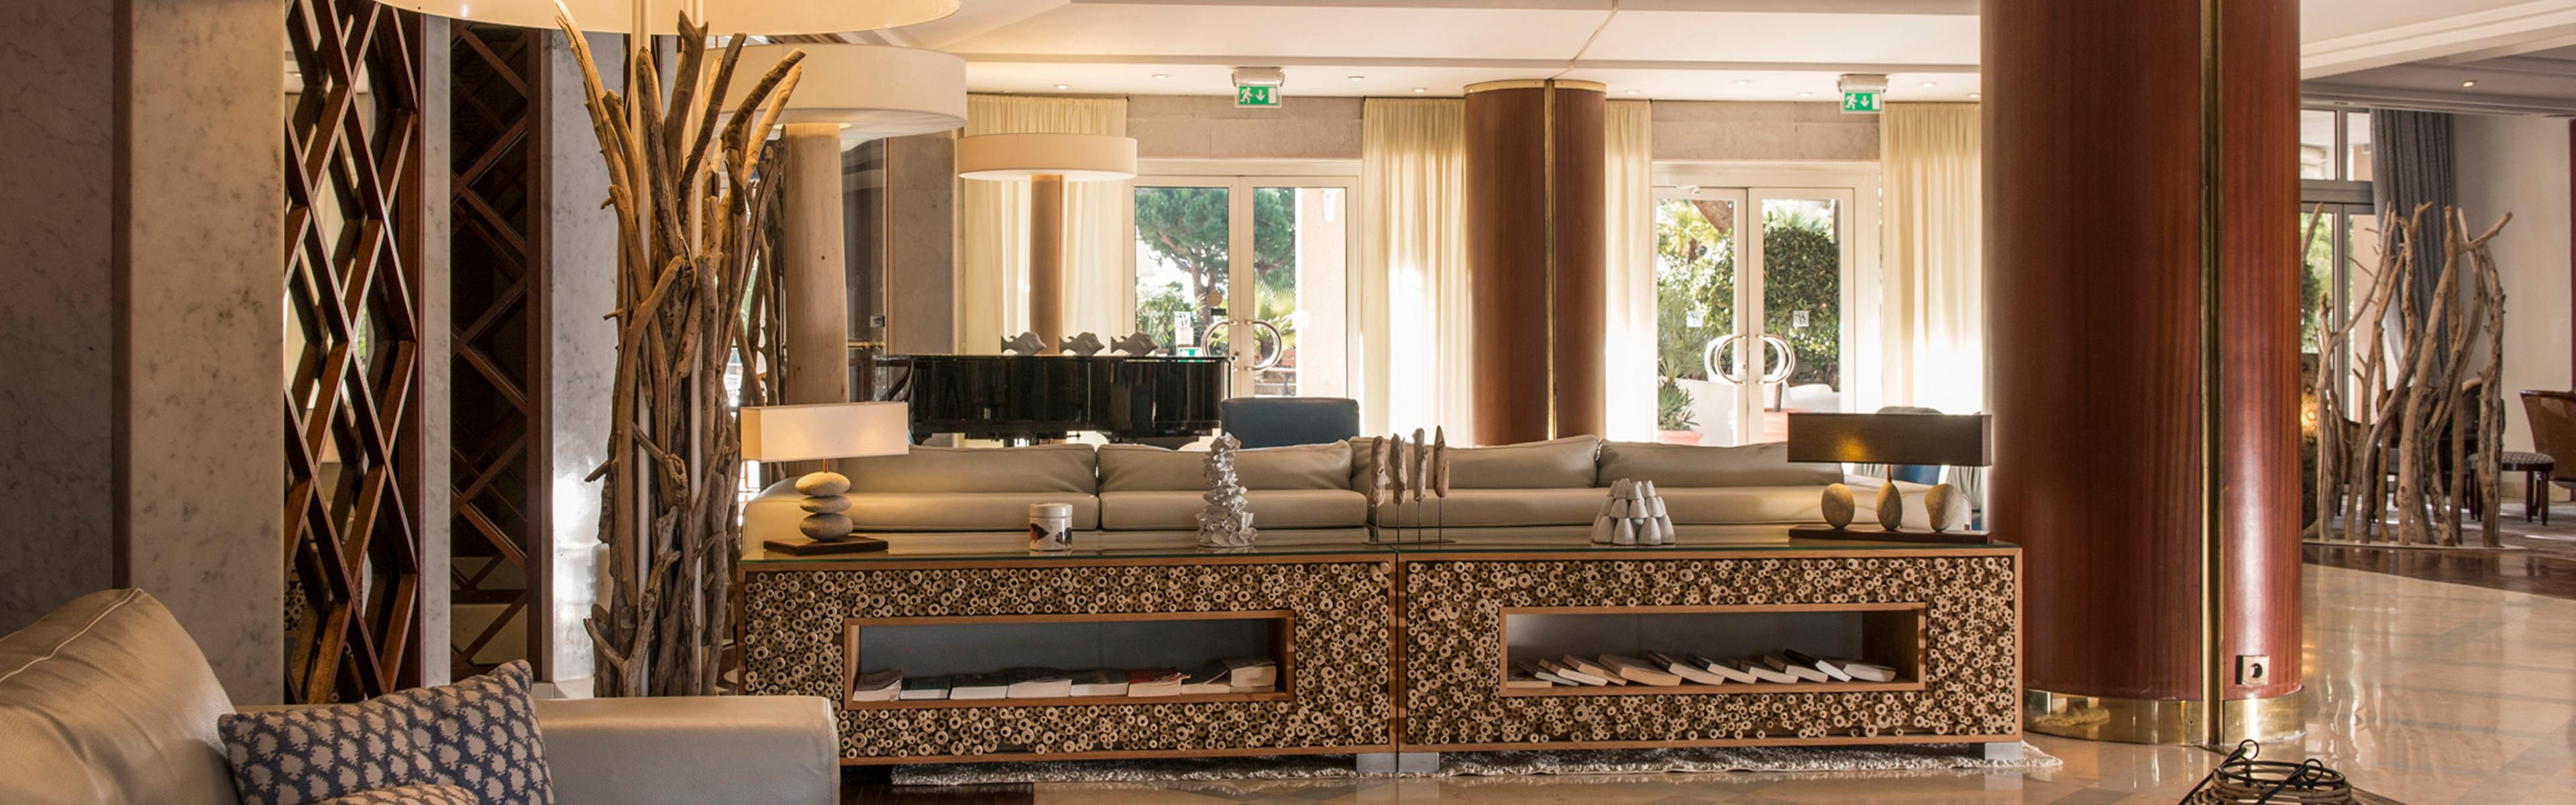 ... Saint Laurent Du Var; Comfy Lobby For When A Moment To Relax ...